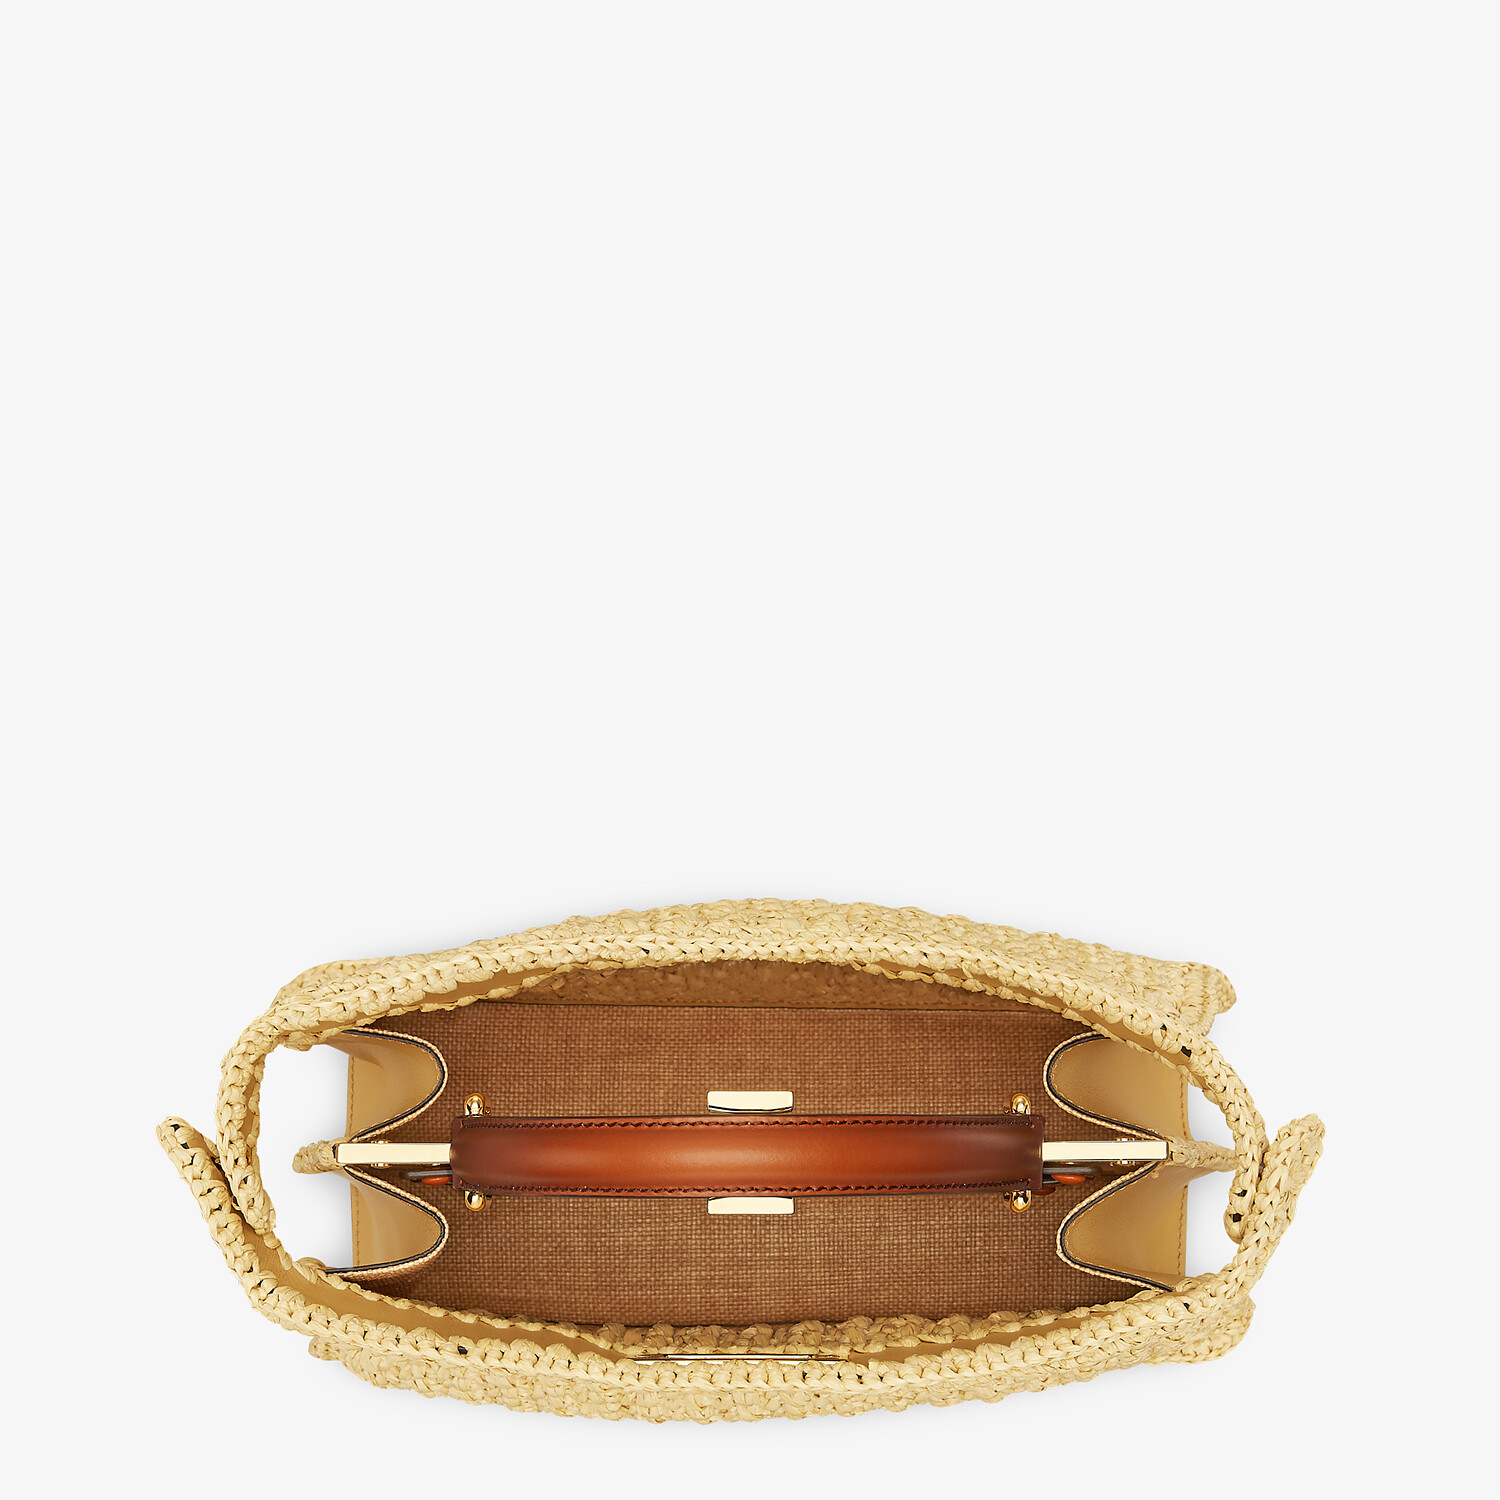 FENDI PEEKABOO ISEEU MEDIUM - Woven straw bag - view 7 detail